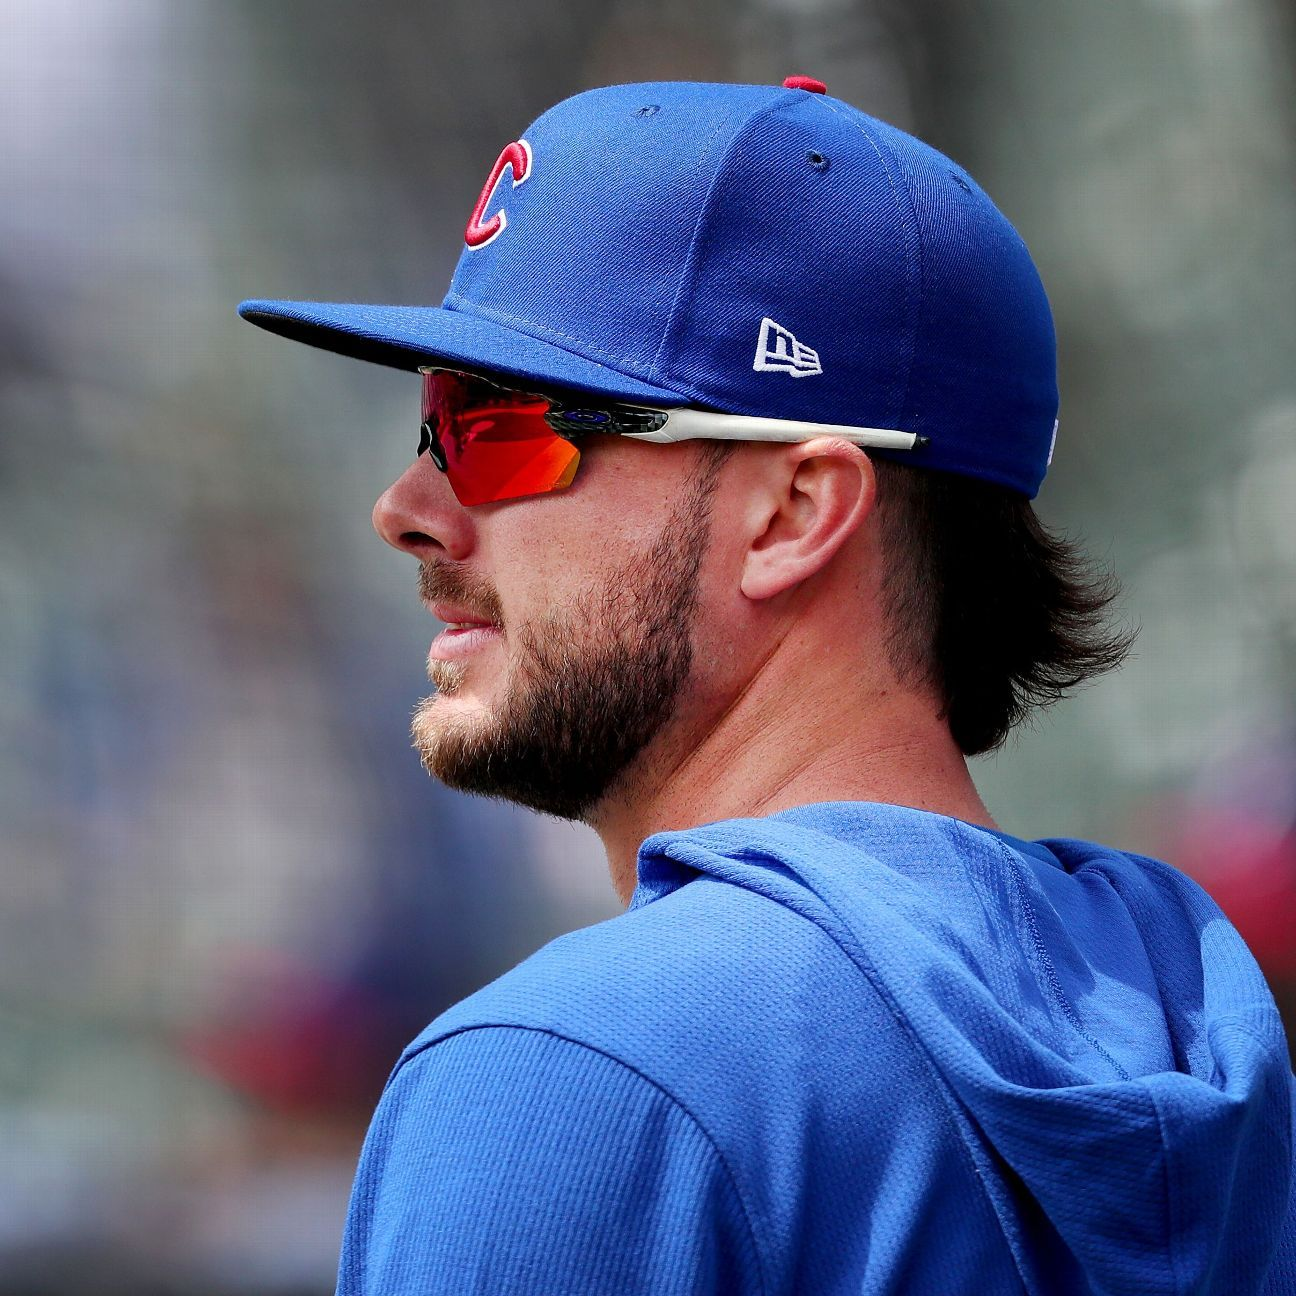 d93deb605 ATLANTA — So what can we make of the Chicago Cubs' 1-3 start? They won  their season opener against the Texas Rangers on Thursday but have since  dropped ...